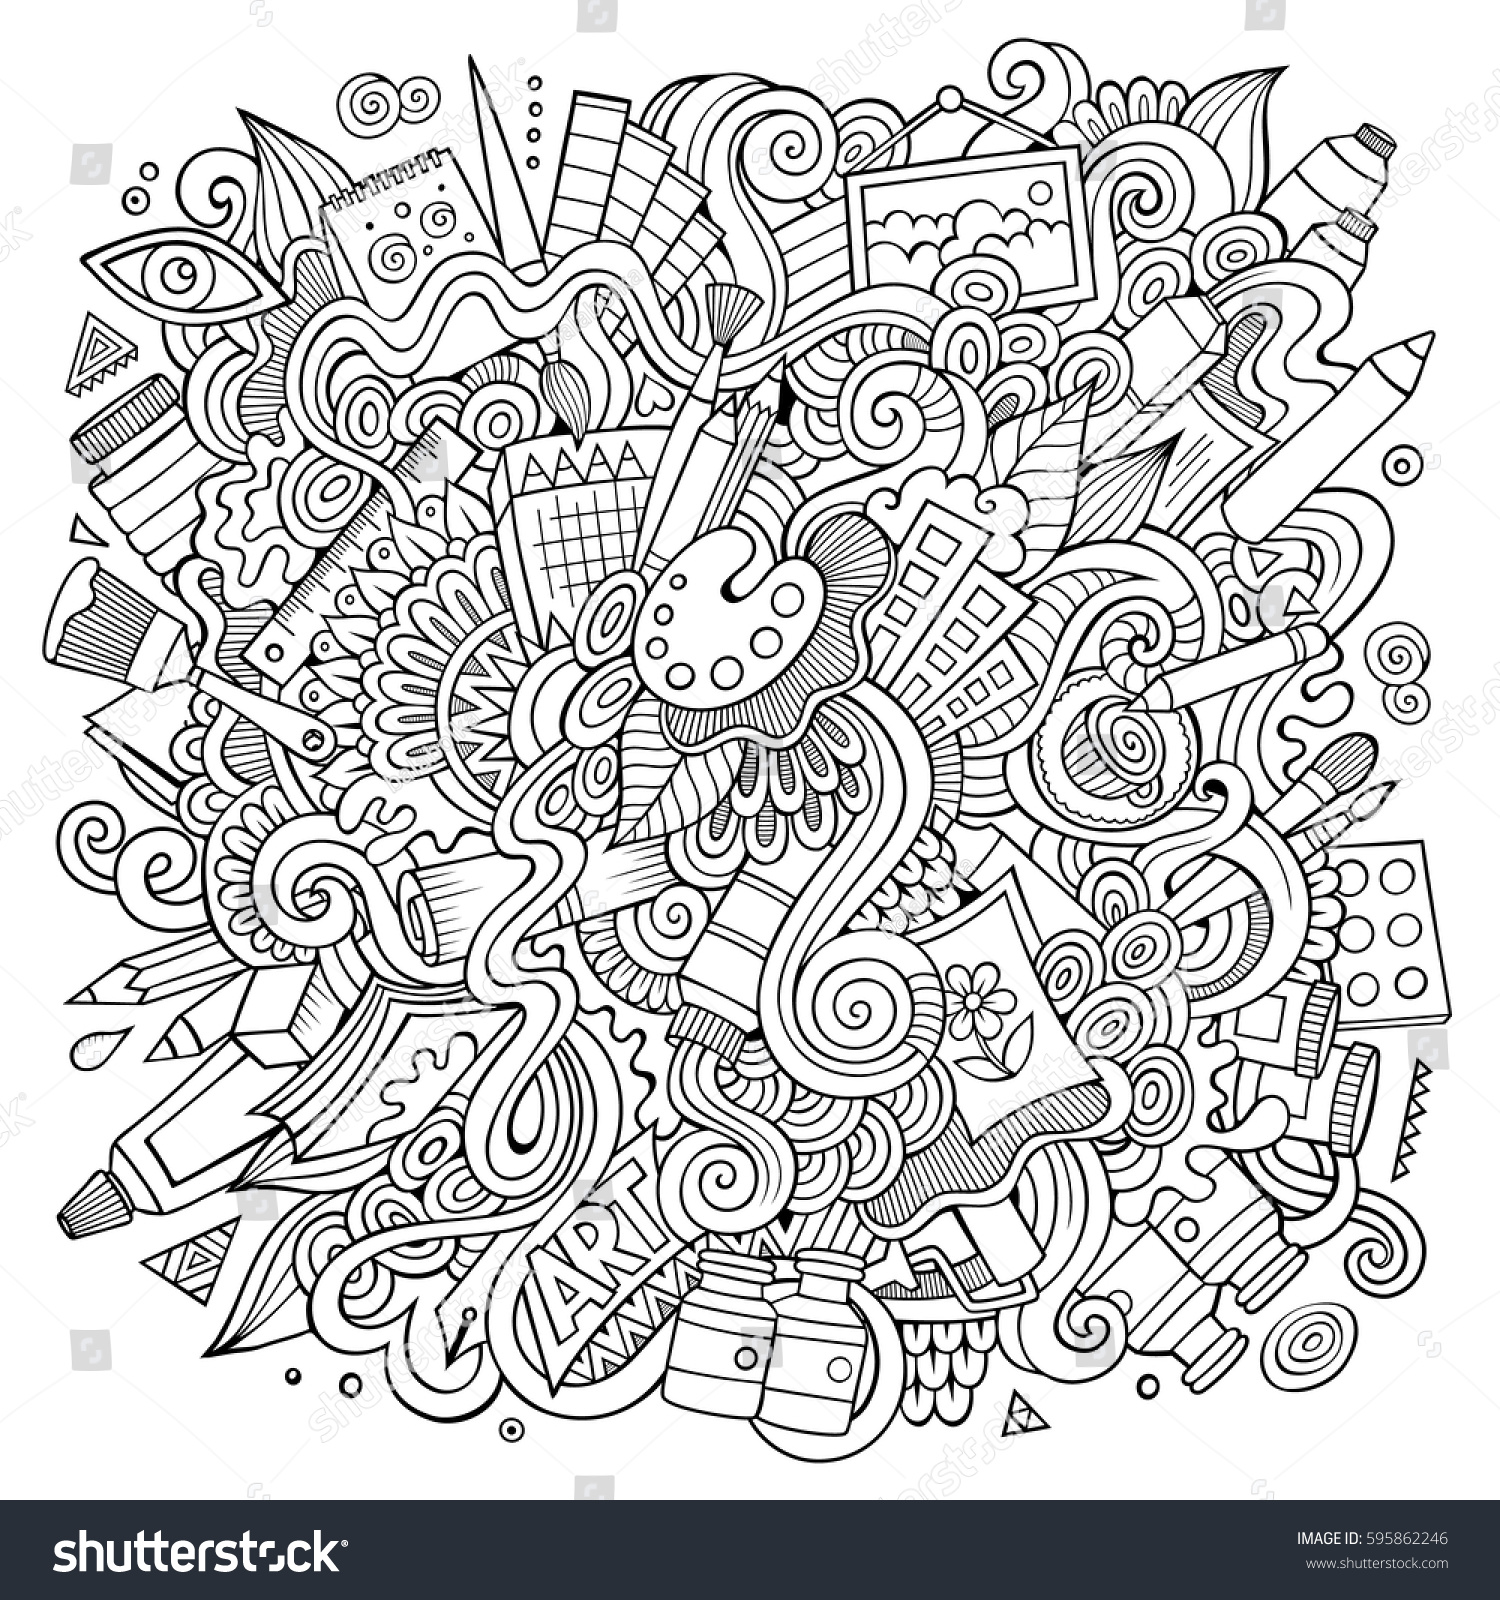 Line Drawing Doodles : Cartoon cute doodles hand drawn artistic stock vector